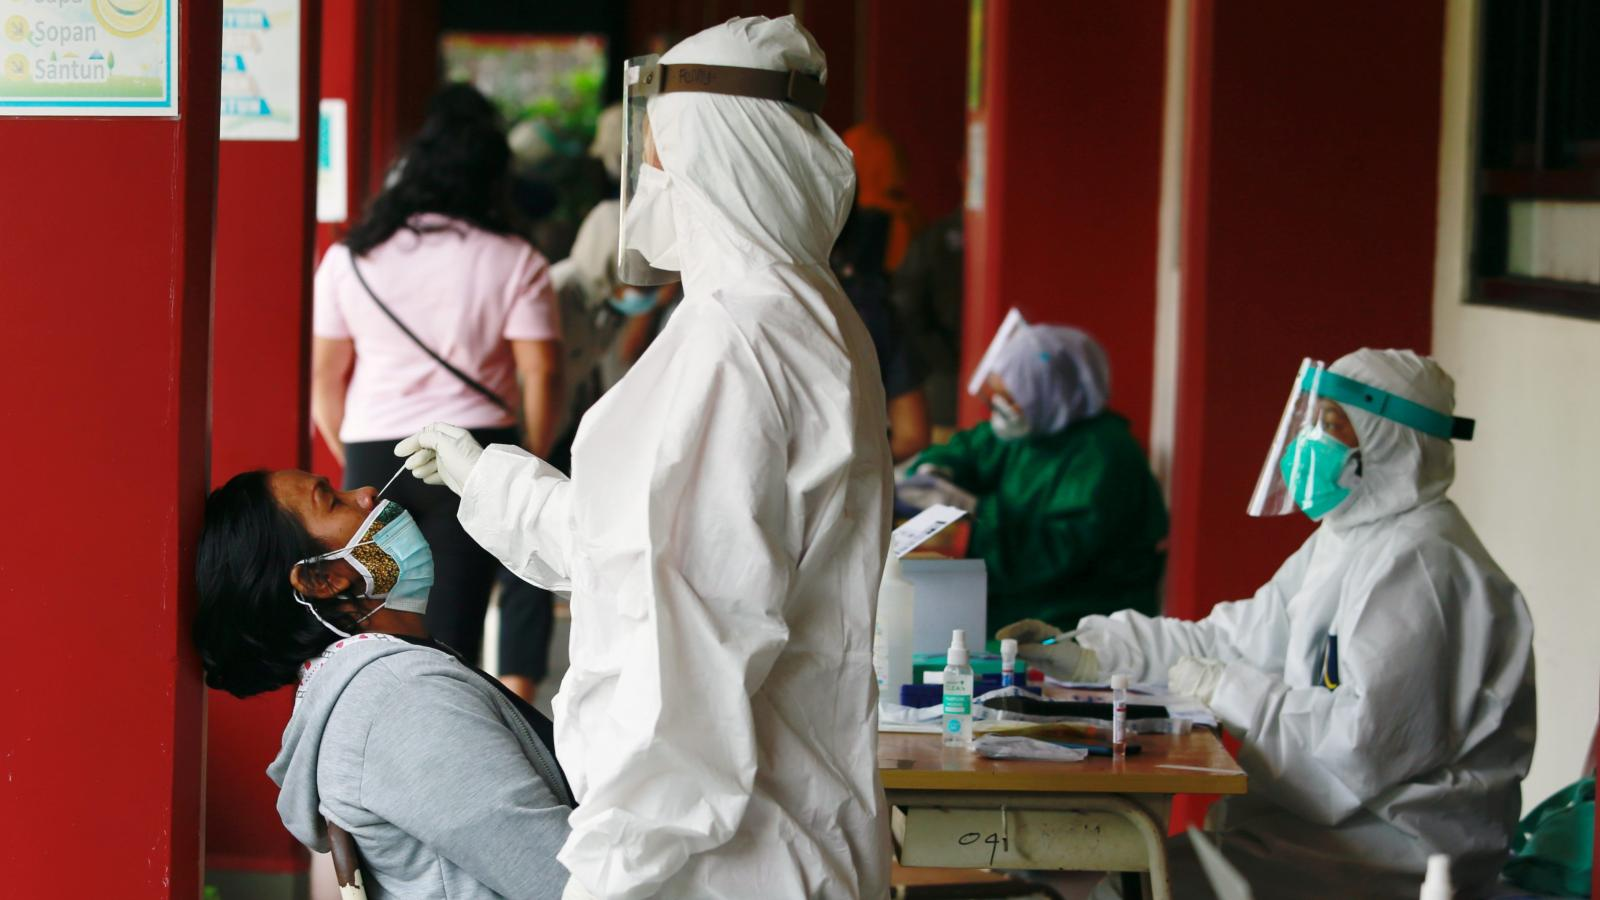 Indonesia extends lockdown after Covid-19 cases decrease